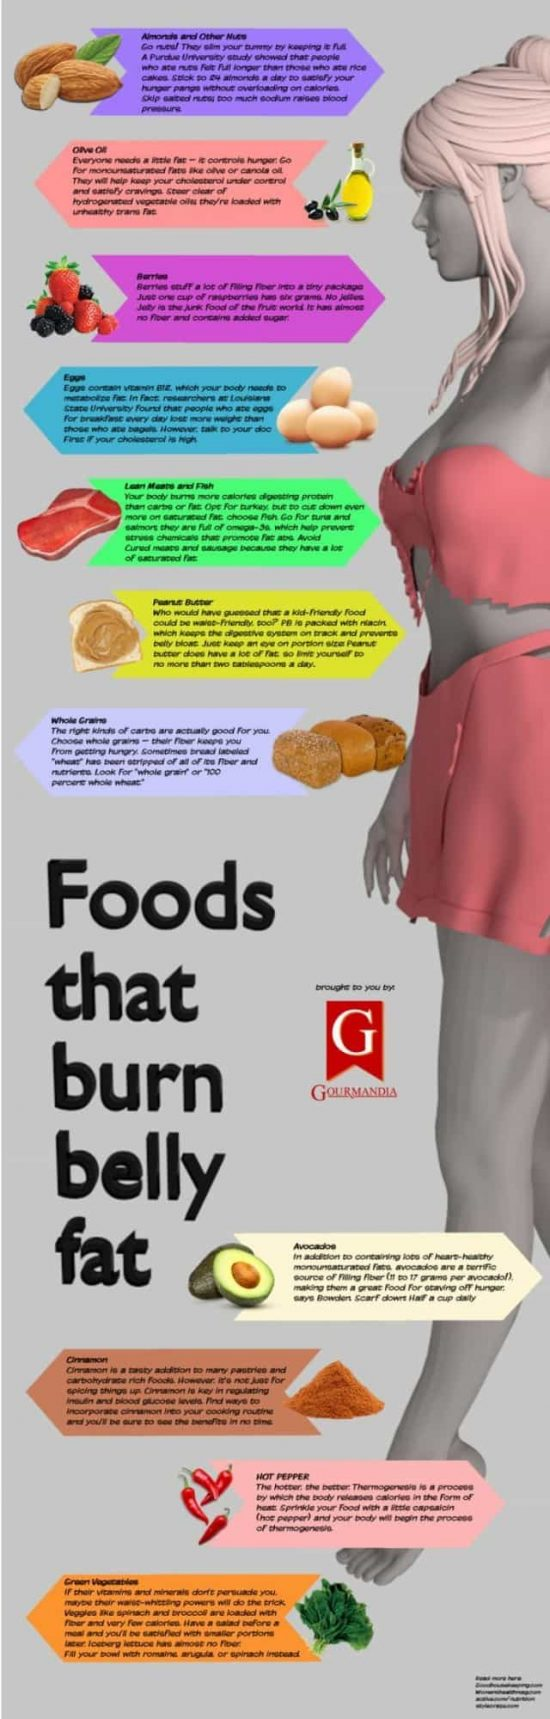 My #1 Top Tip On How To Burn Belly Fat Fast! – Healthy ...